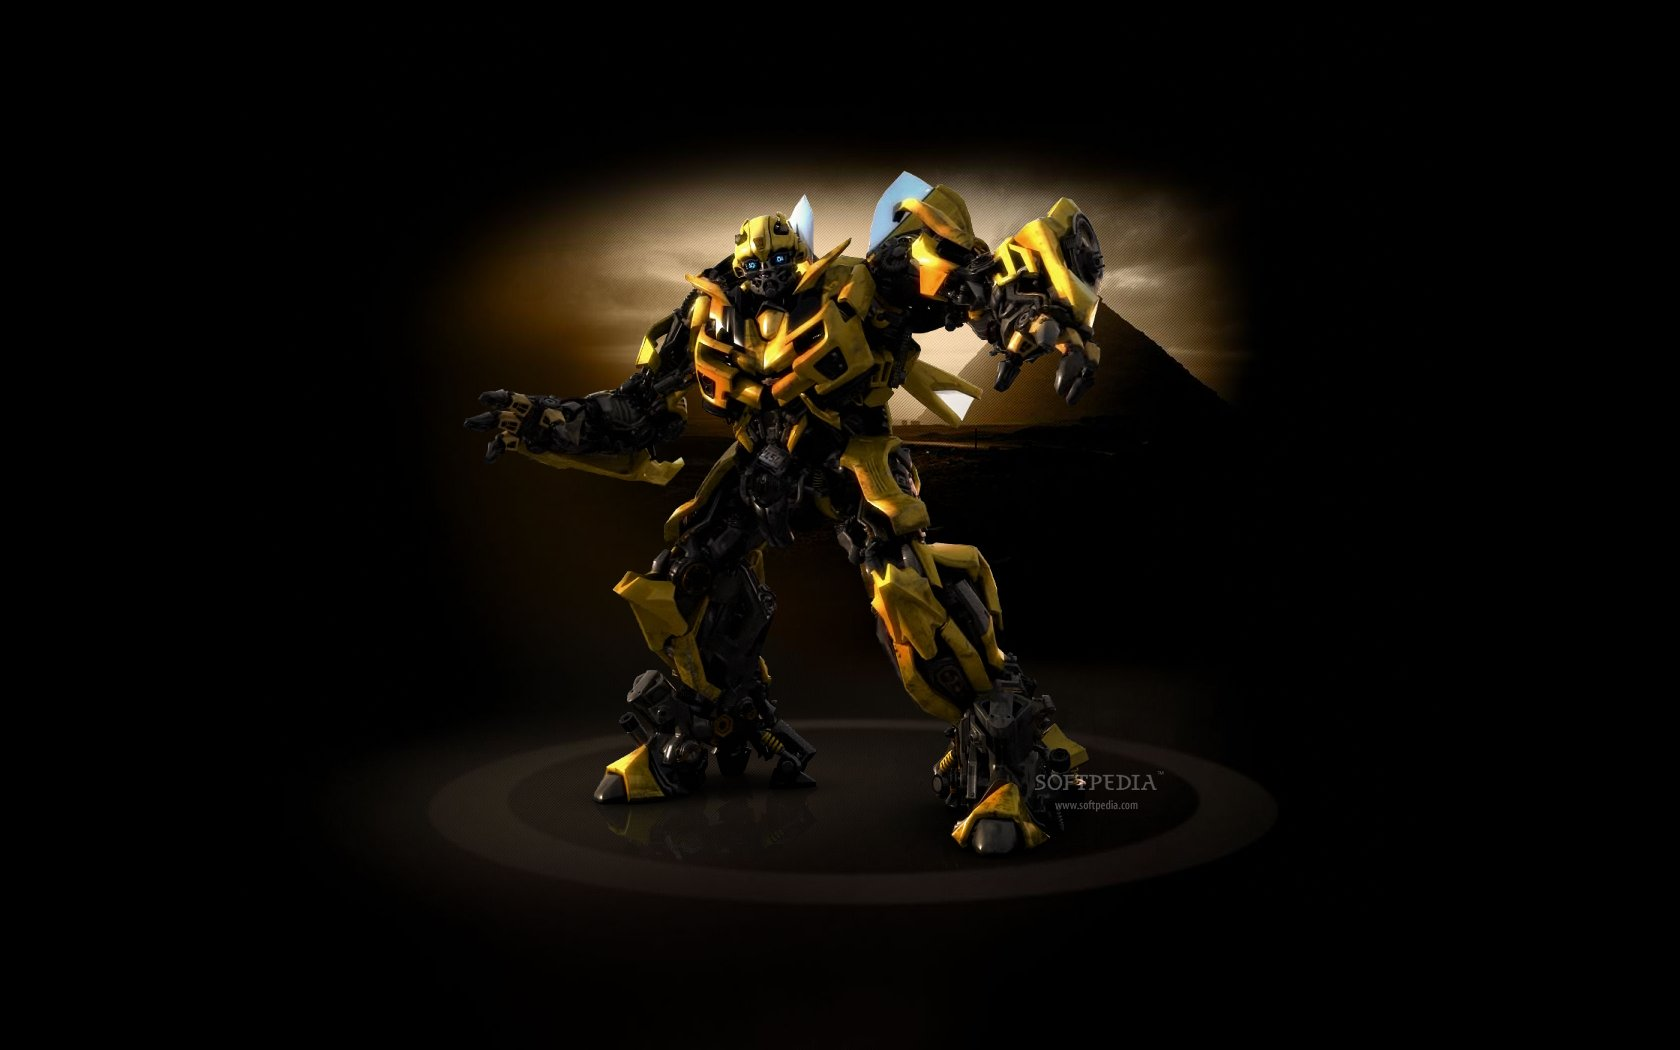 Photos of bumblebee the transformer About us Simons